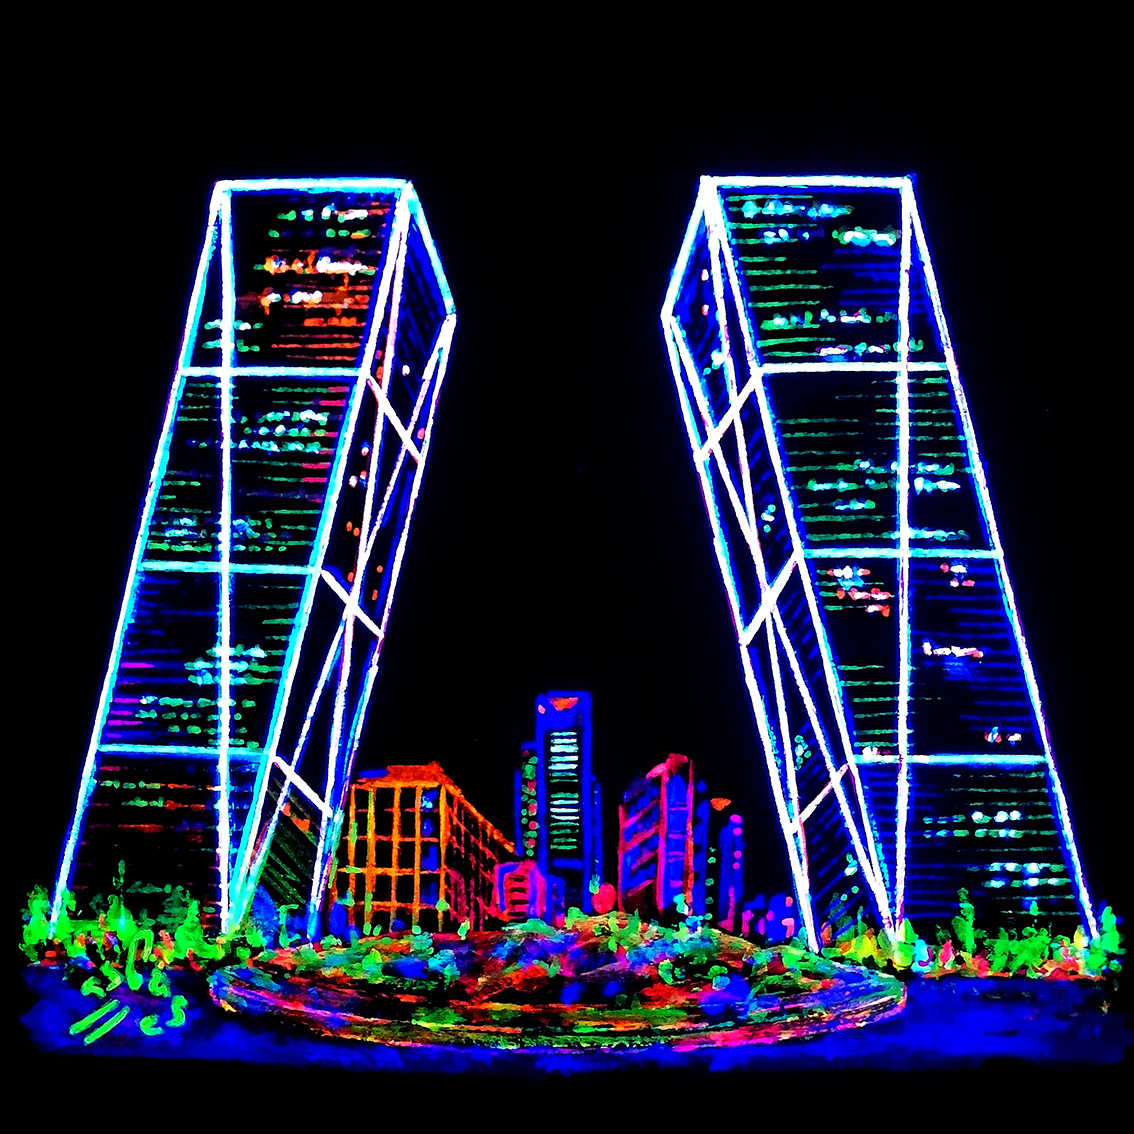 Torres-Kio.-Fluorescent-Illustrations.-Night-City-Lights-Collection-by-Vicky-Casellas.-Fluorescent